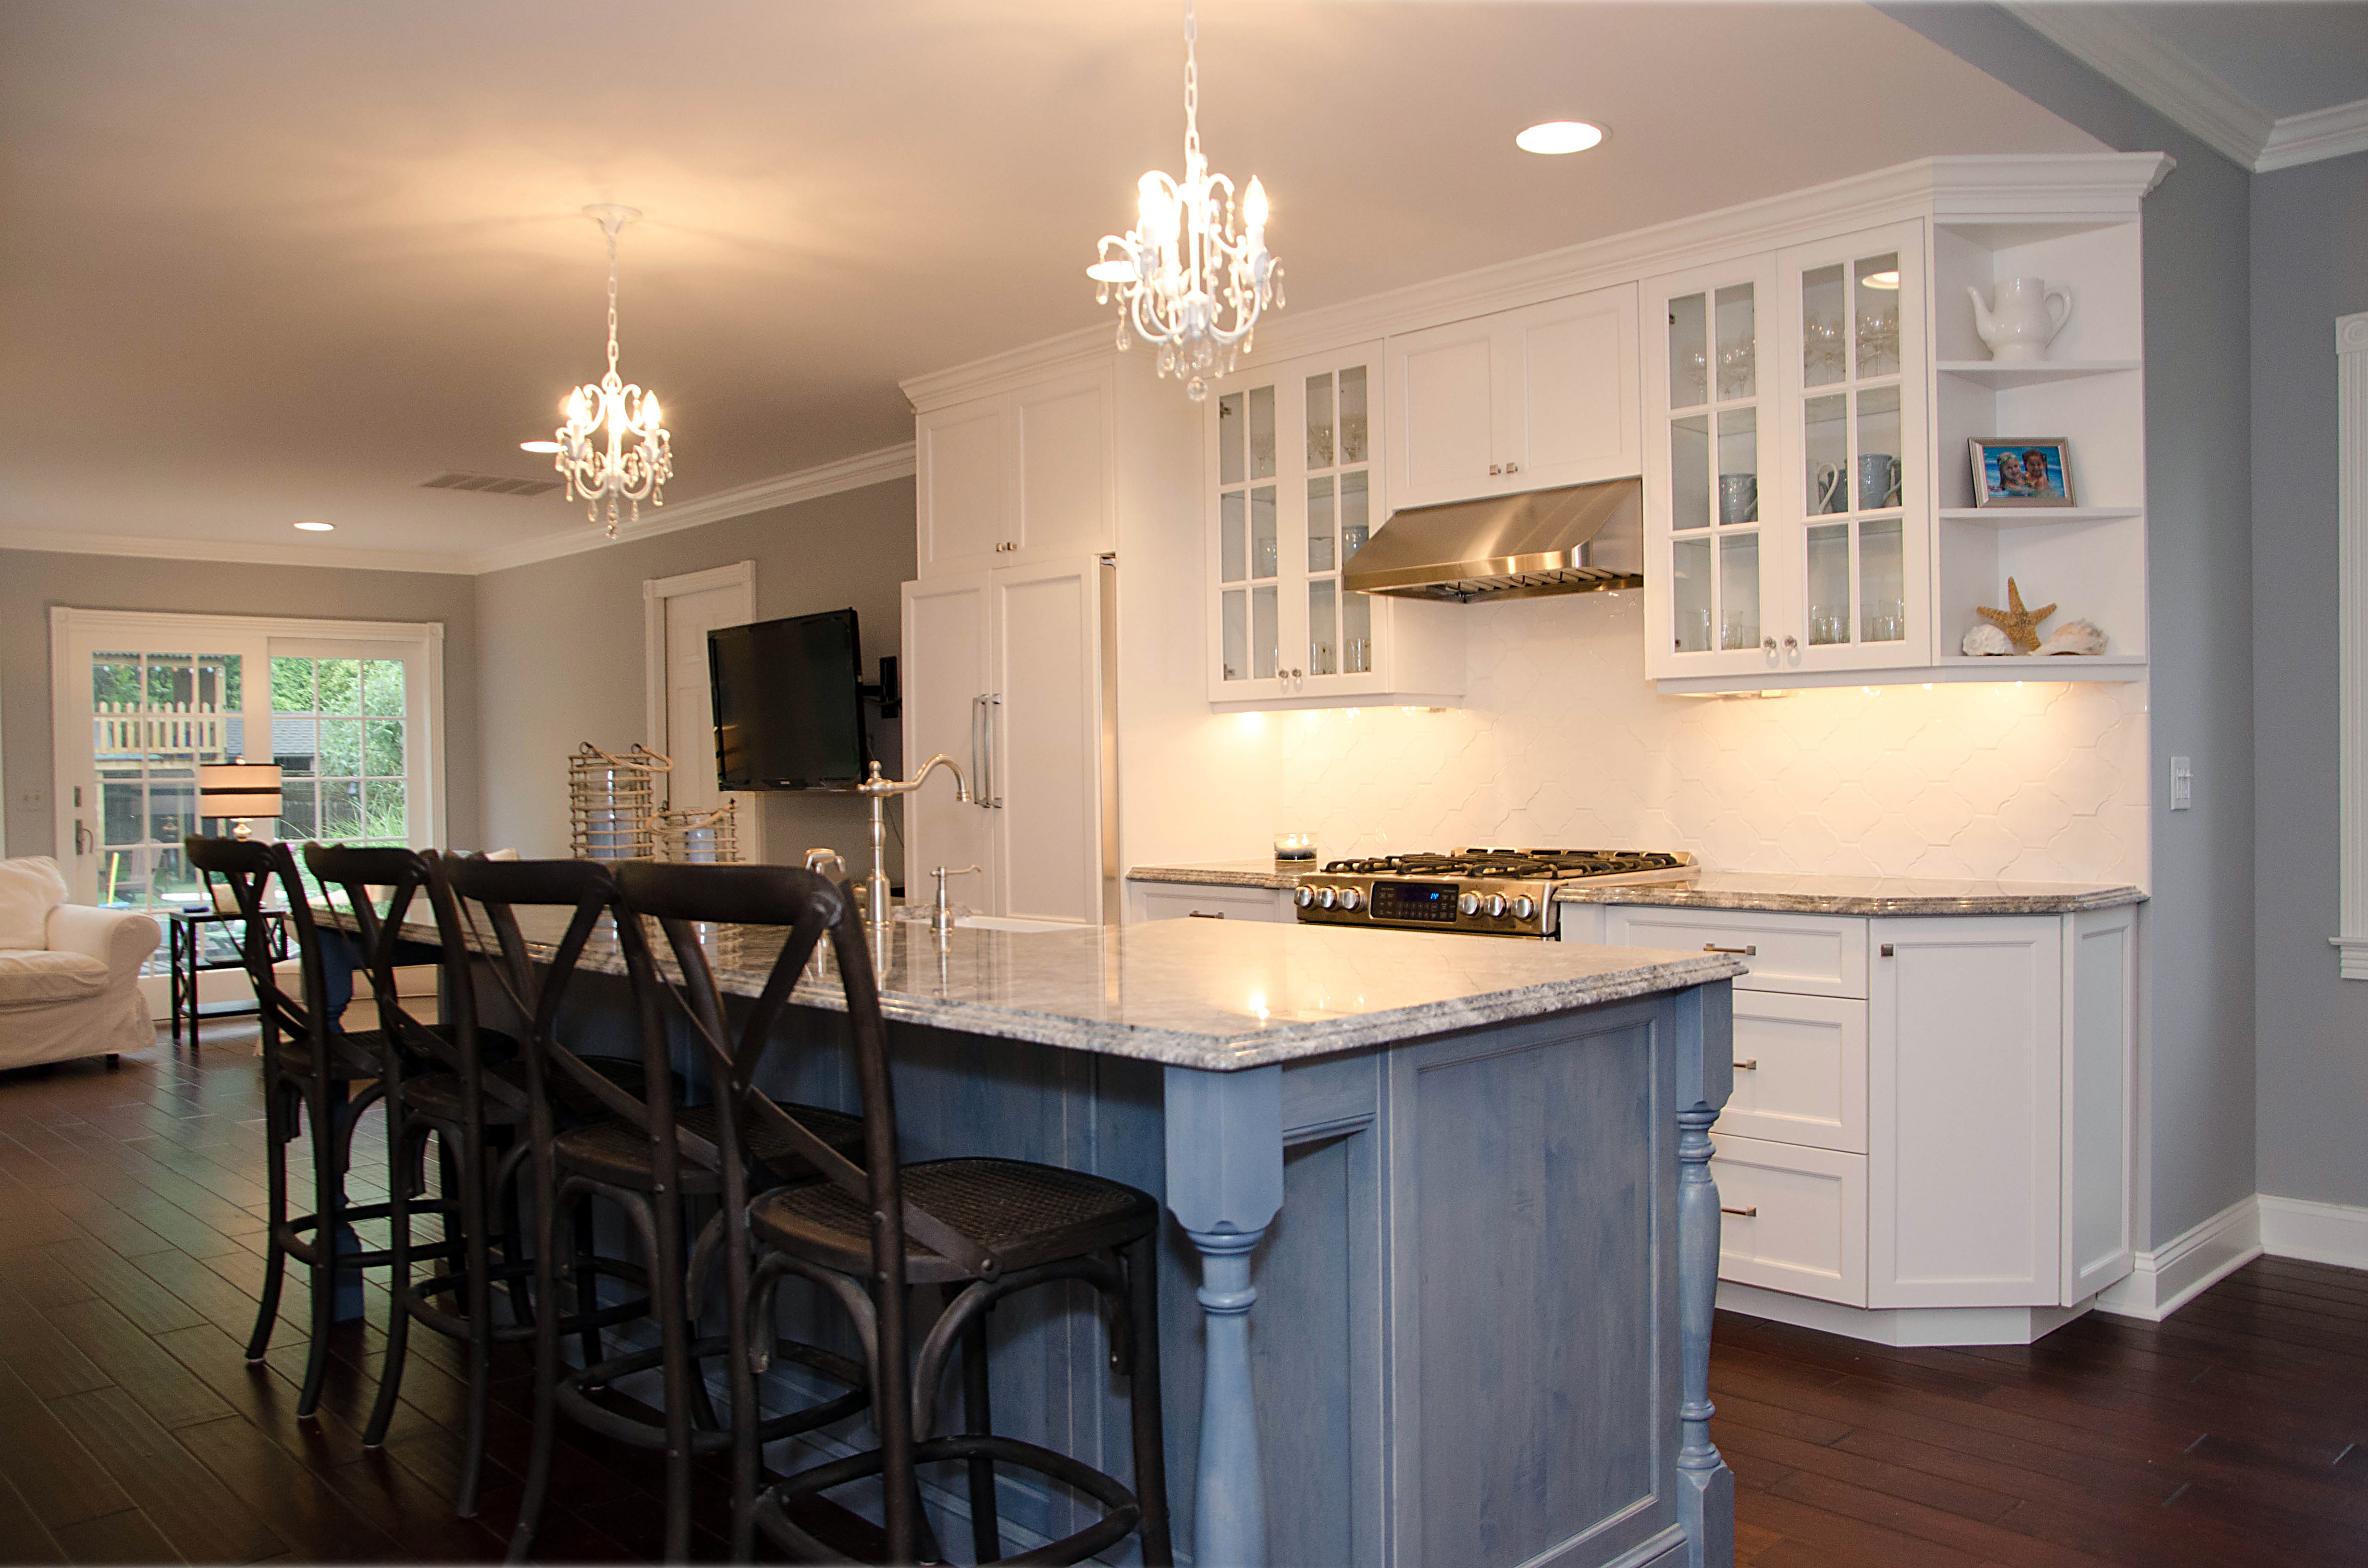 Shore Kitchen Renovation Brielle NJ by Design Line Kitchens